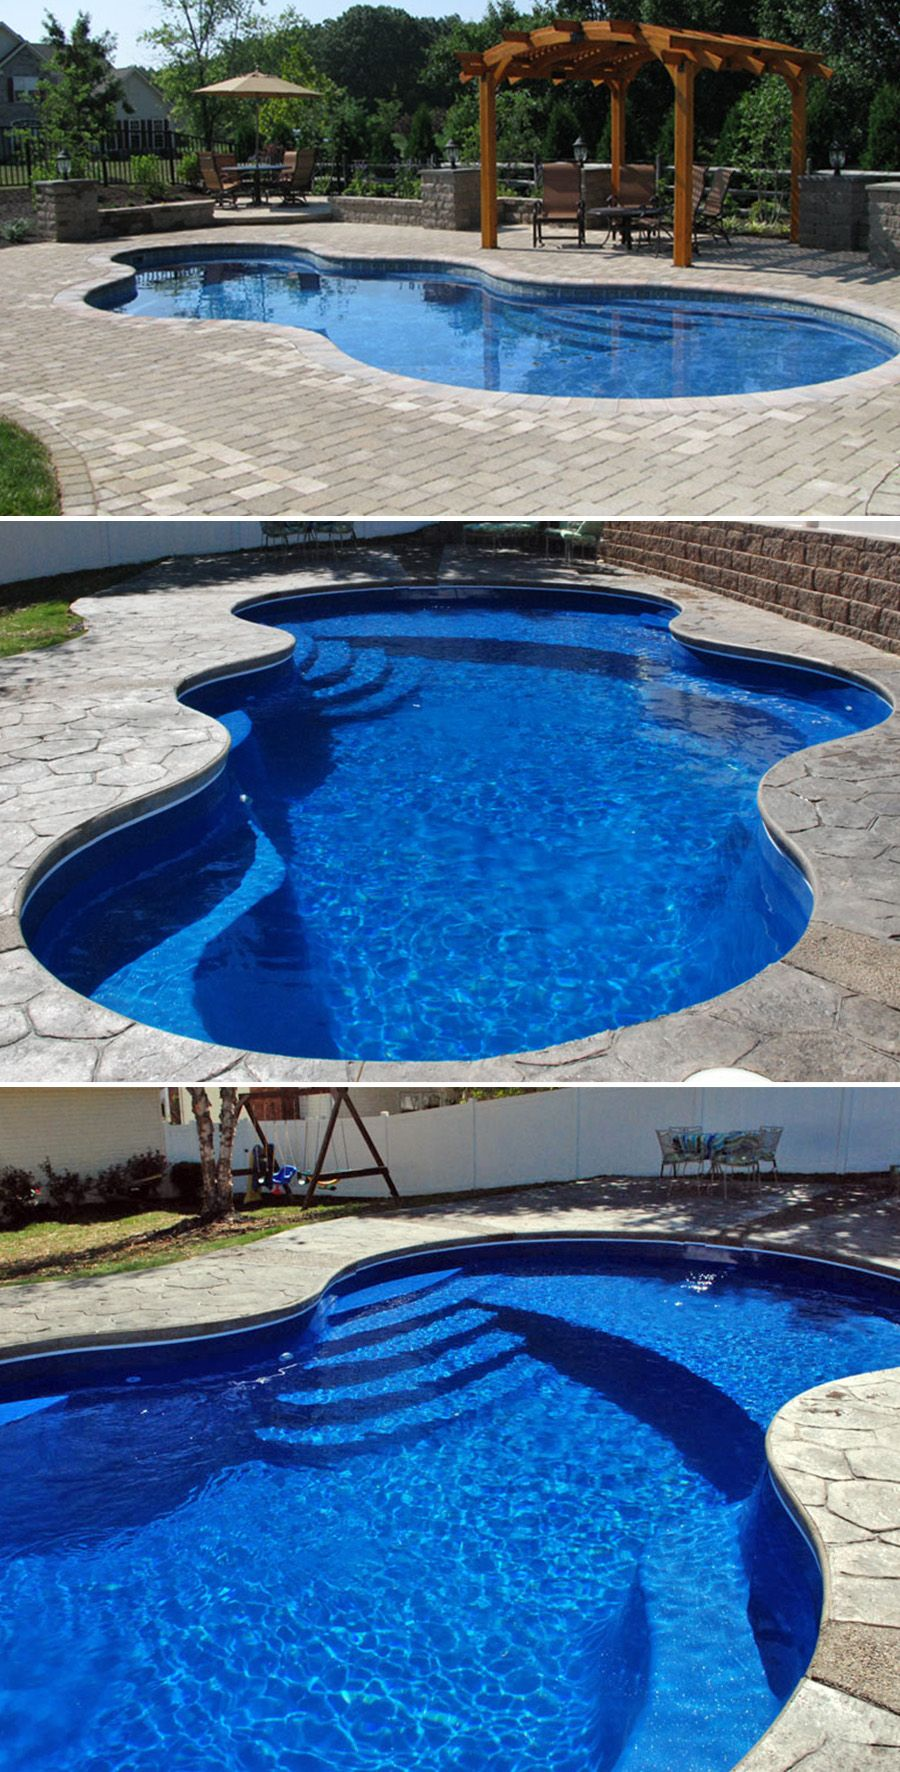 The Axiom Is A Larger Version Of The Nebula Offering More Swimming Space Multiple Depths Swimming Pools Backyard Pools Backyard Inground Swimming Pool Designs